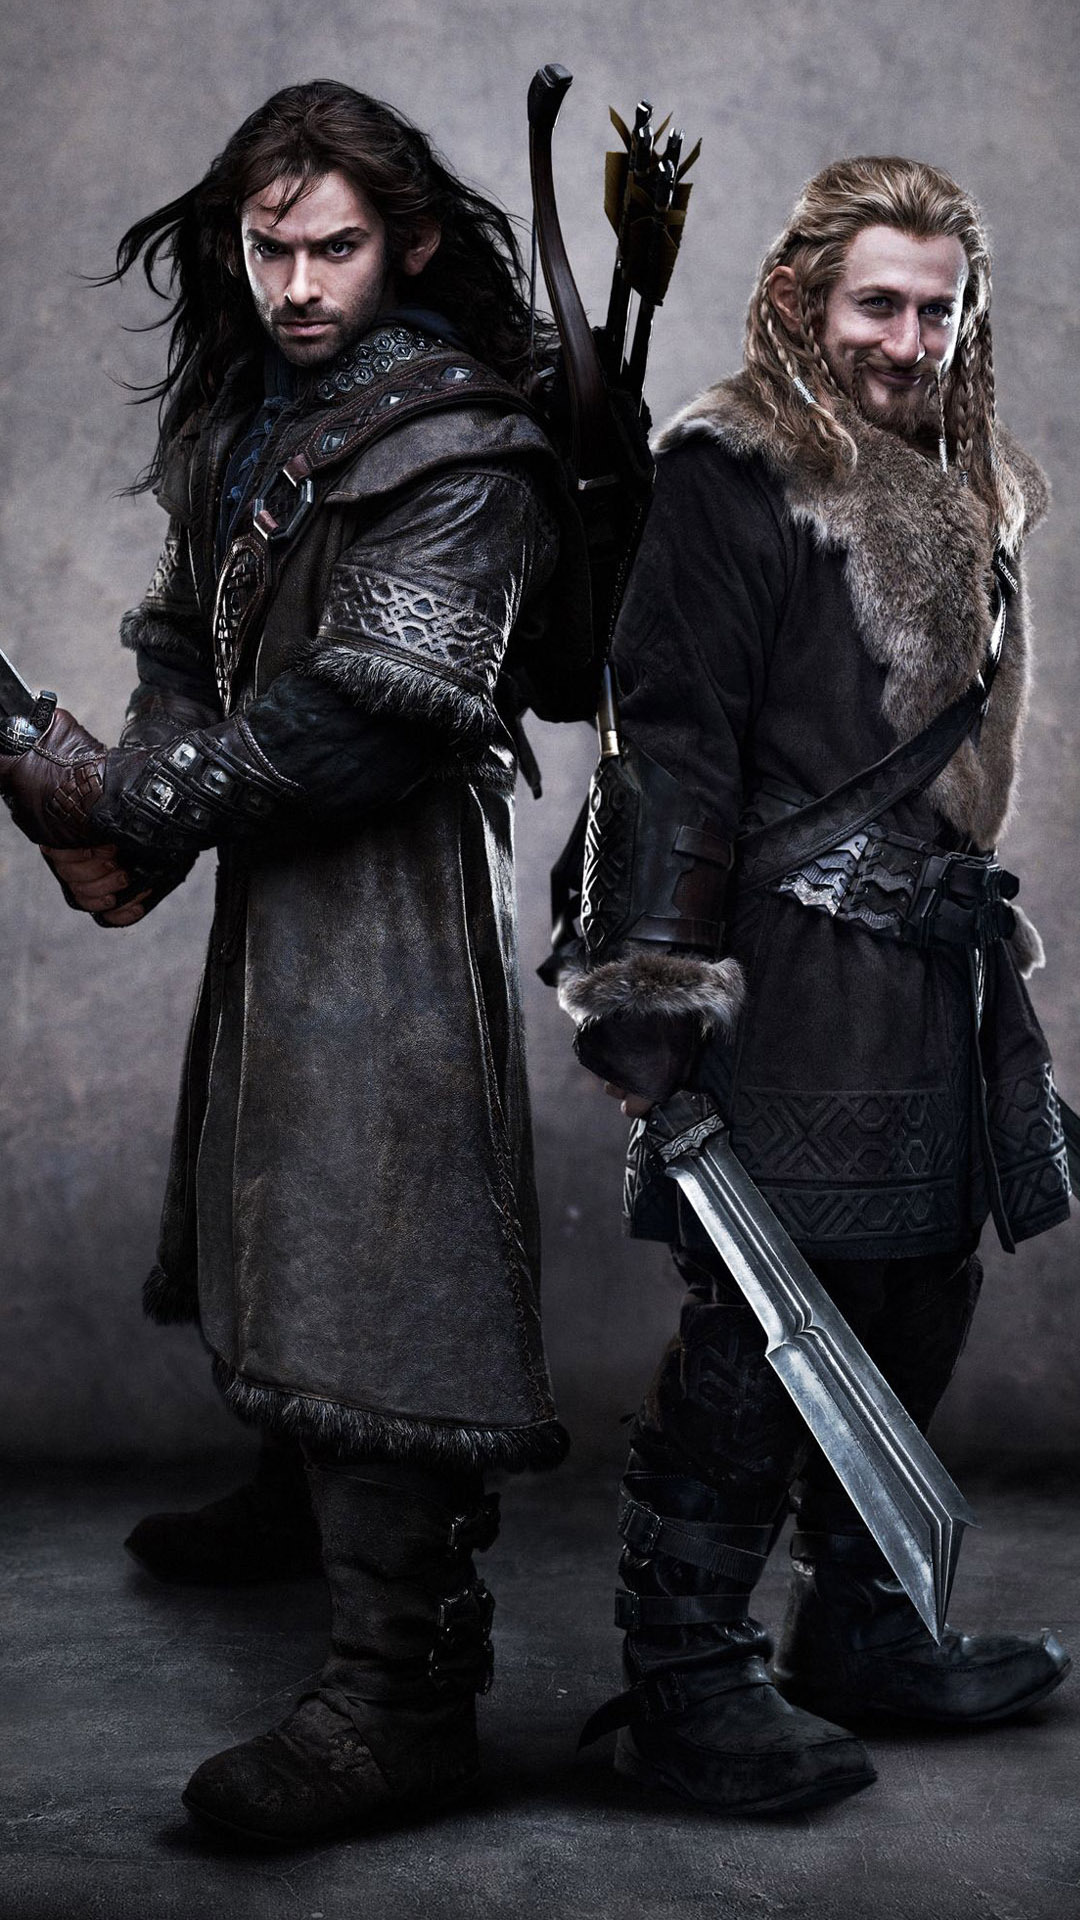 Leather Costumes From The Hobbit 1080x1920